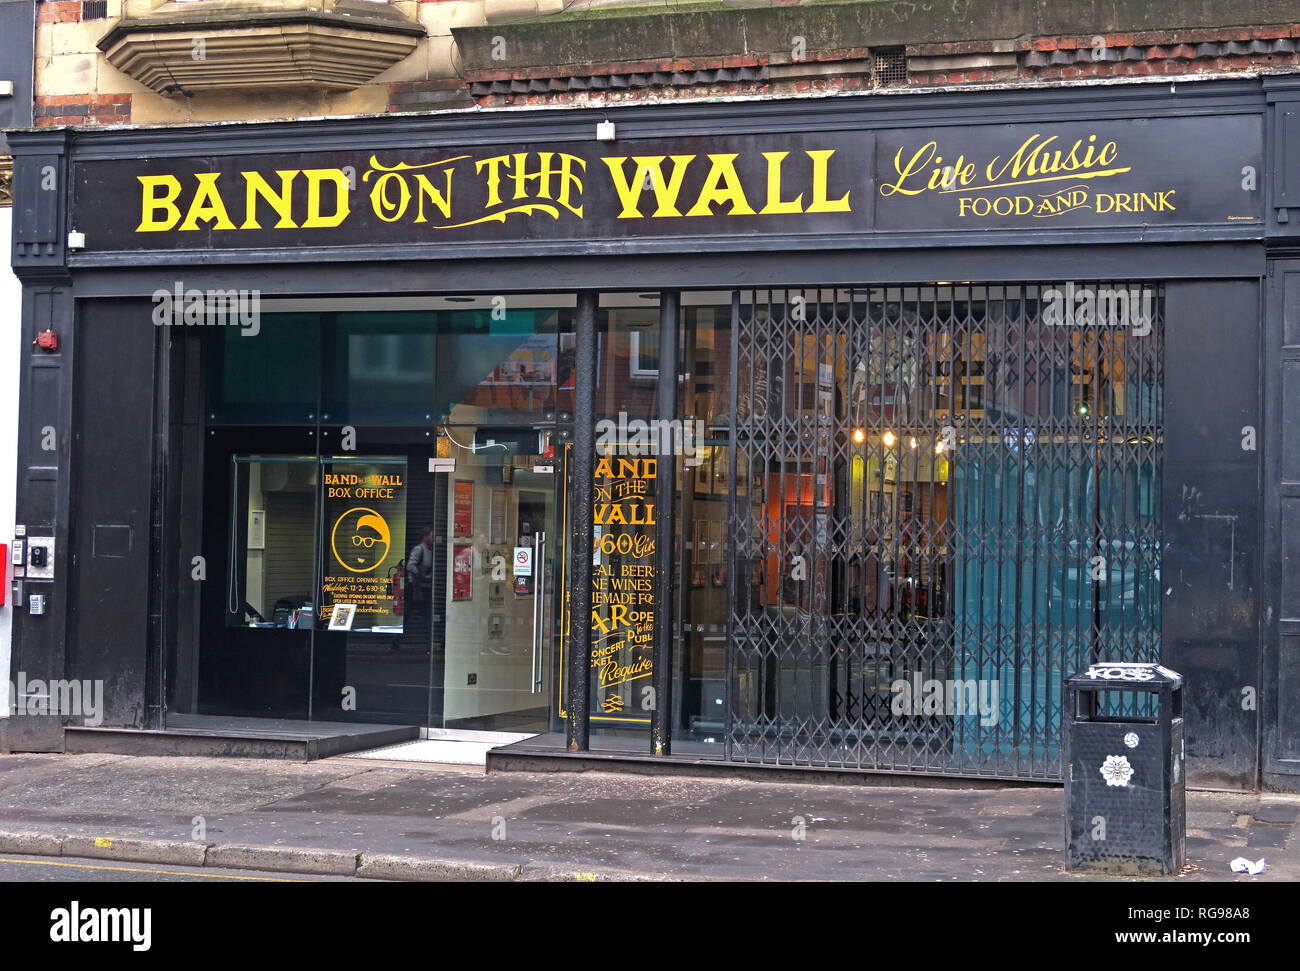 Band on the wall, music venue, 25 Swan Street Manchester, England, UK, M4 5JZ - Stock Image